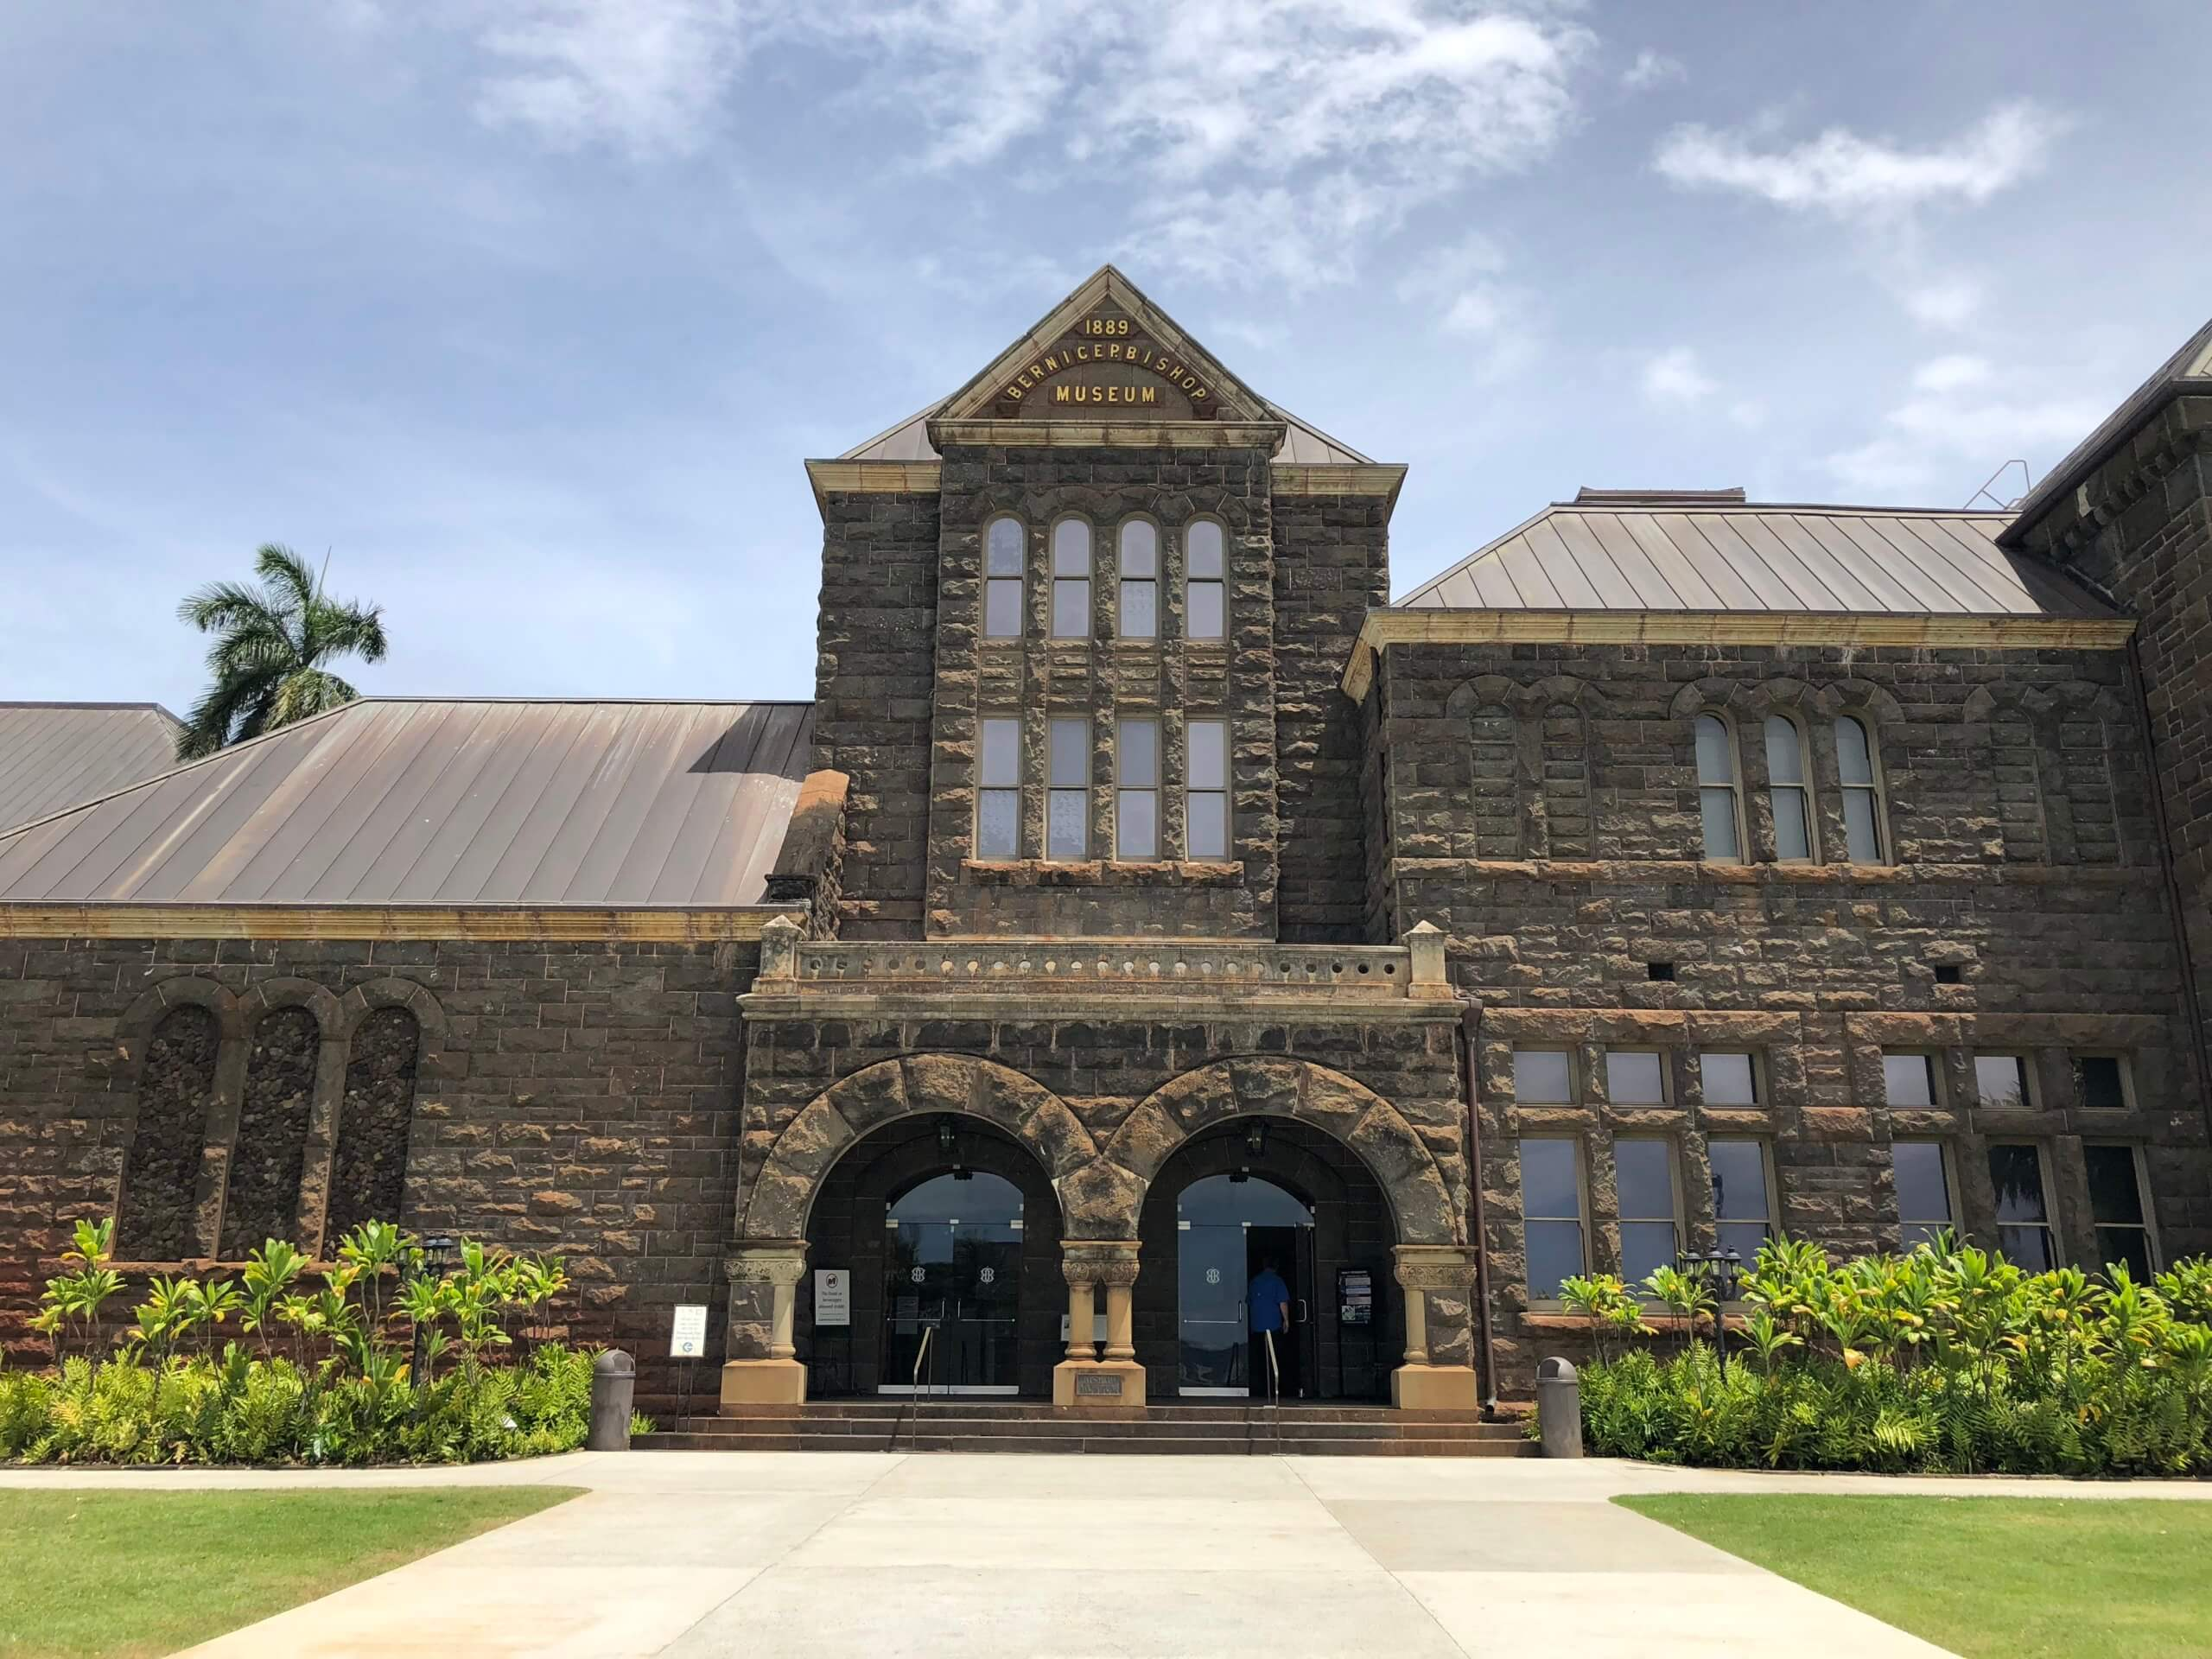 The Bishop Museum is Hawaii's premier natural and cultural history museum